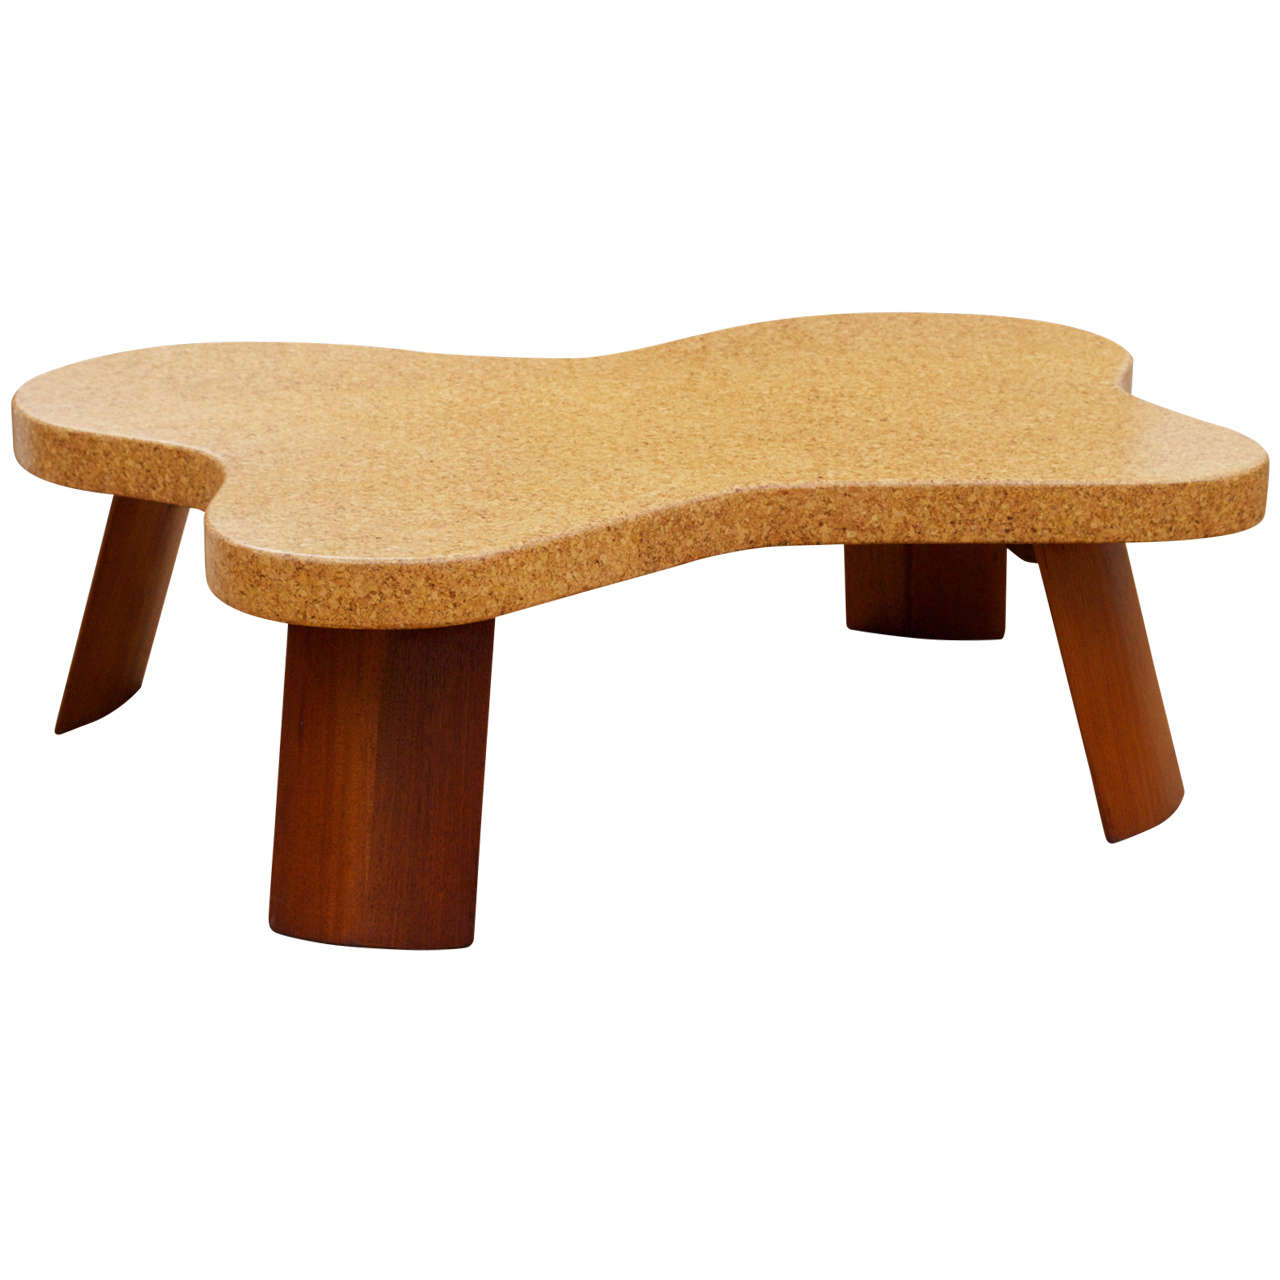 paul frankl cork top coffee table at 1stdibs On cork coffee table